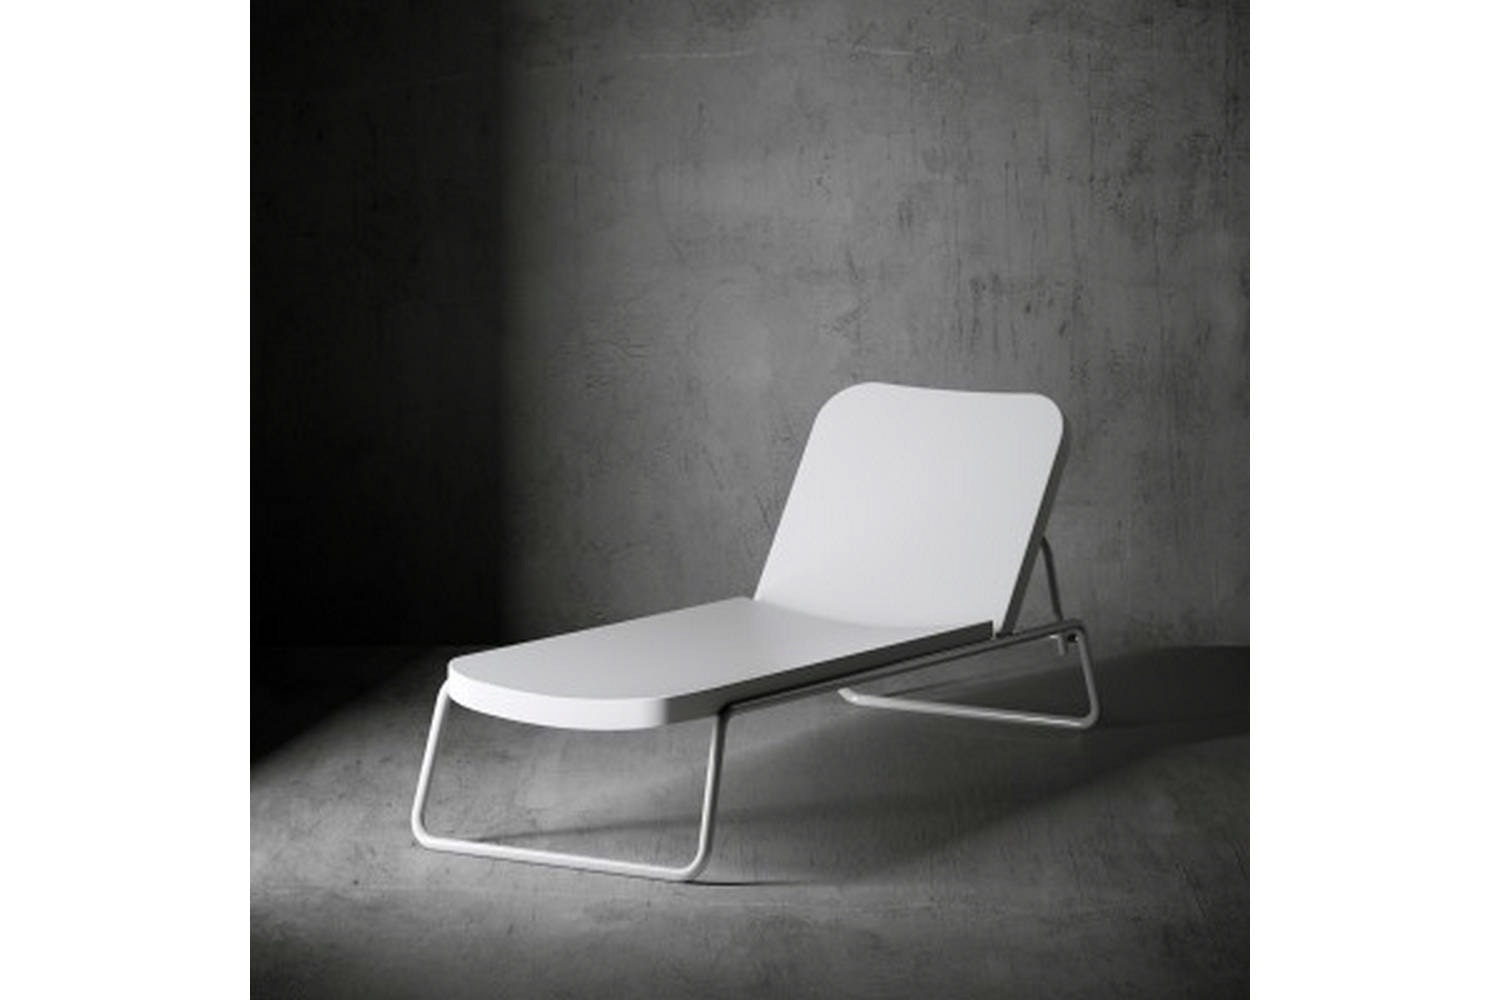 Time Out Reclining Chaise Longue by Rodolfo Dordoni for Serralunga